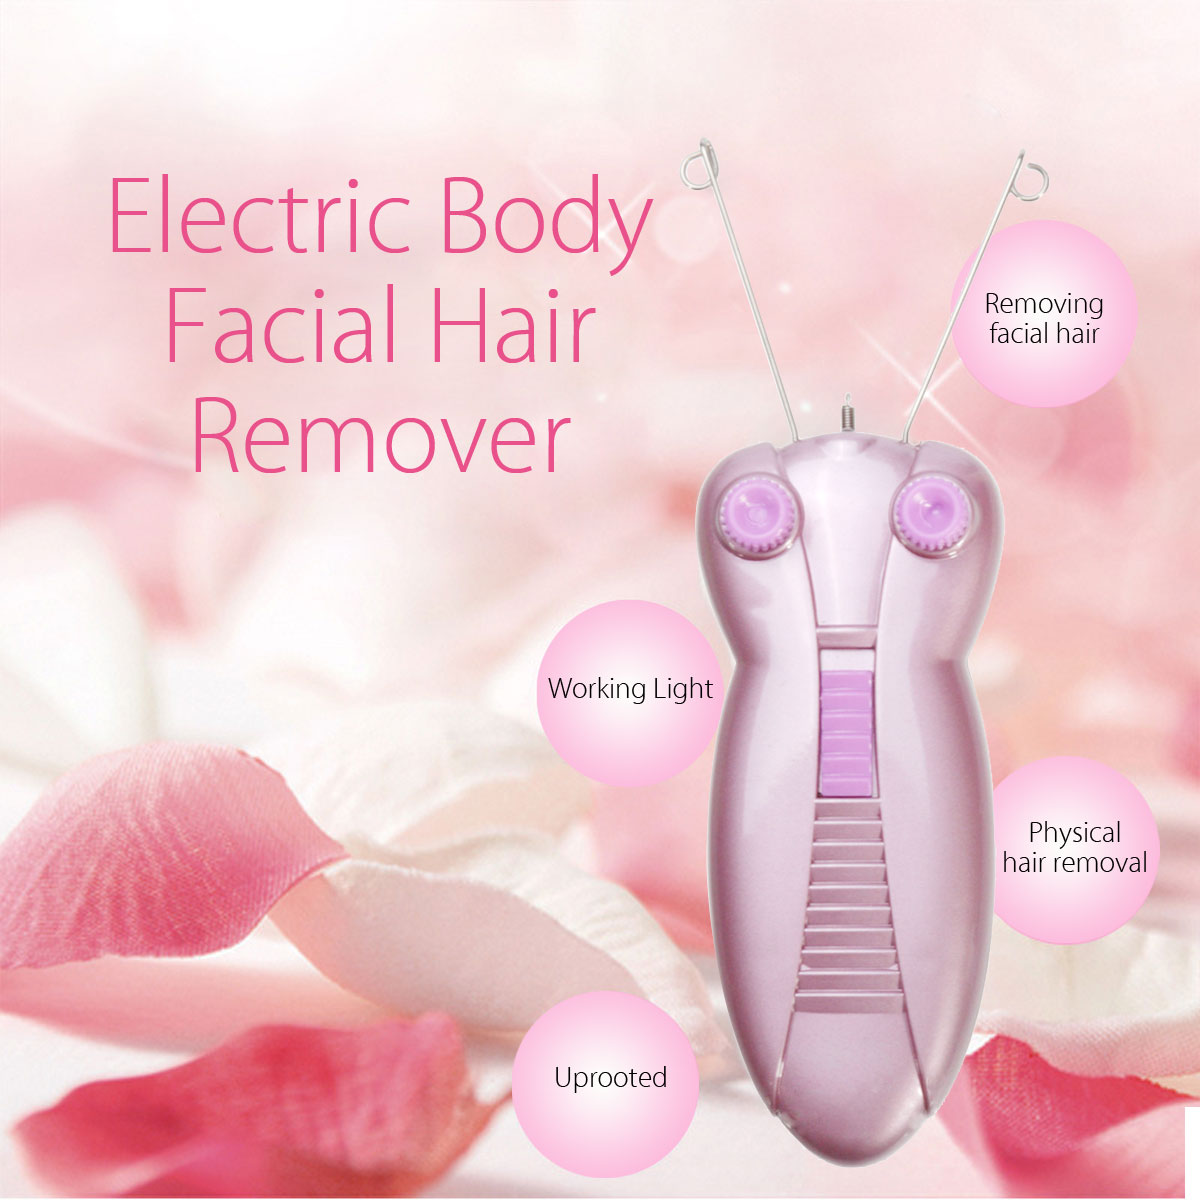 SURKER Mini Electric Body Neck Leg Hair Face Facial Hair Remover Defeatherer Cotton Thread Epilator Shaver Removal for Women electric women face hair removal tools body face facial hair remover epilator for women cotton thread defeather epilator shaver